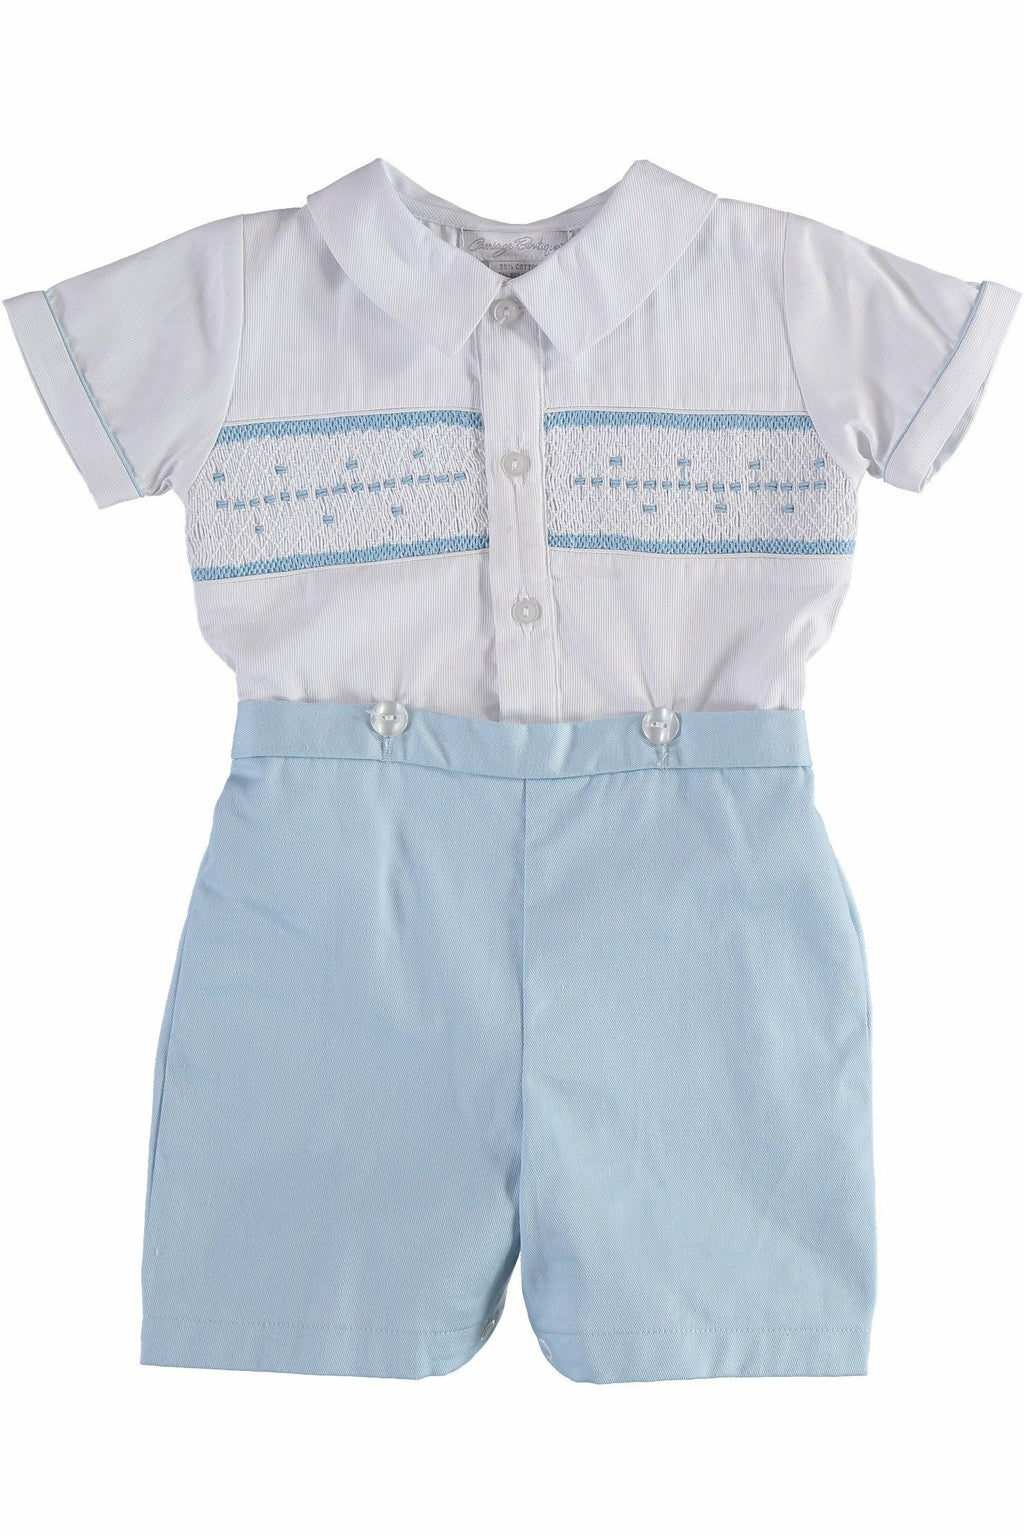 Carriage Boutique Boys Short Romper Set White Shirt and attached Blue Shorts Bobbie Suit with Hand Smocking